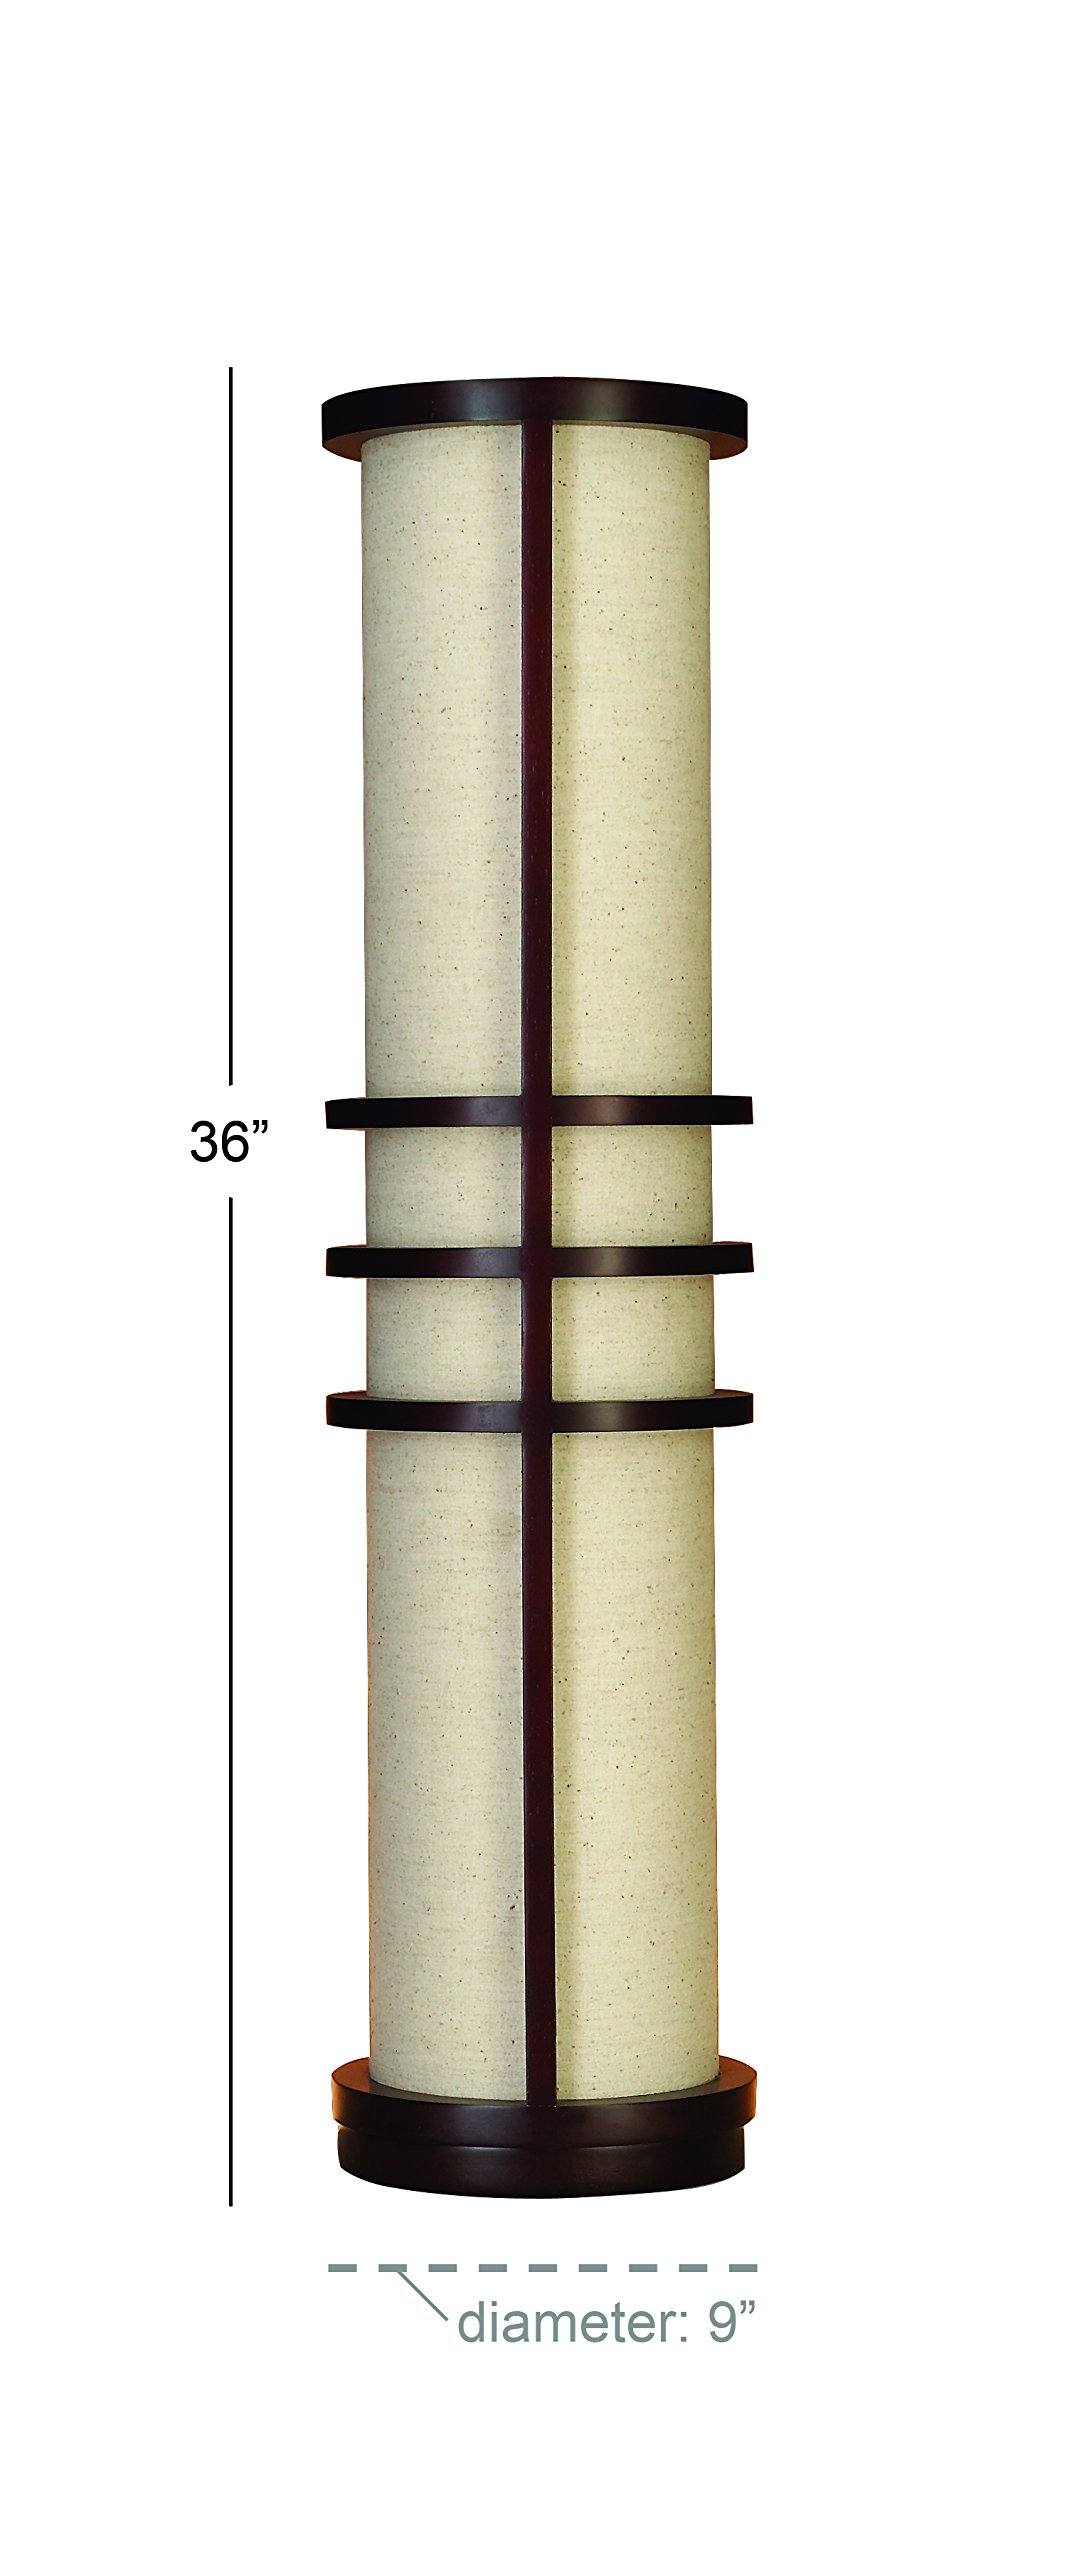 Deco 79 Wood Floor Lamp Made of Brown Wood by Deco 79 (Image #2)